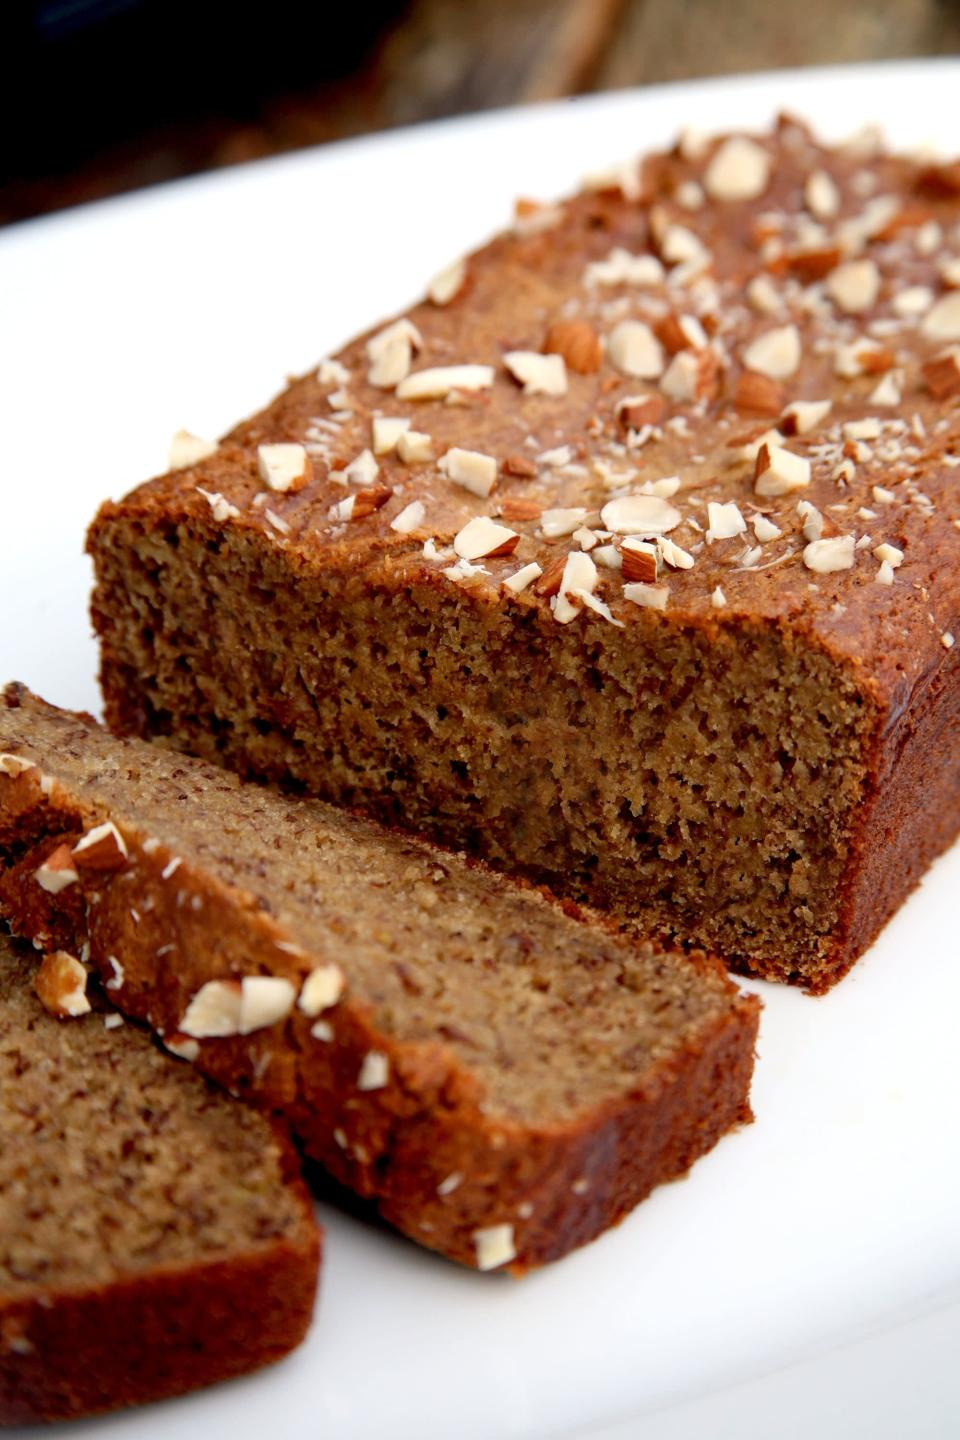 "<p>Eating more protein will satiate hunger longer, so you can sneak extra into foods that normally don't have much by adding protein powder. Add it to pancakes, <a href=""https://www.popsugar.com/fitness/Protein-Banana-Bread-37091173"" class=""link rapid-noclick-resp"" rel=""nofollow noopener"" target=""_blank"" data-ylk=""slk:banana bread"">banana bread</a>, and <a href=""https://www.popsugar.com/fitness/Healthy-Cornbread-Recipe-40075184"" class=""link rapid-noclick-resp"" rel=""nofollow noopener"" target=""_blank"" data-ylk=""slk:homemade cornbread"">homemade cornbread</a>.</p>"